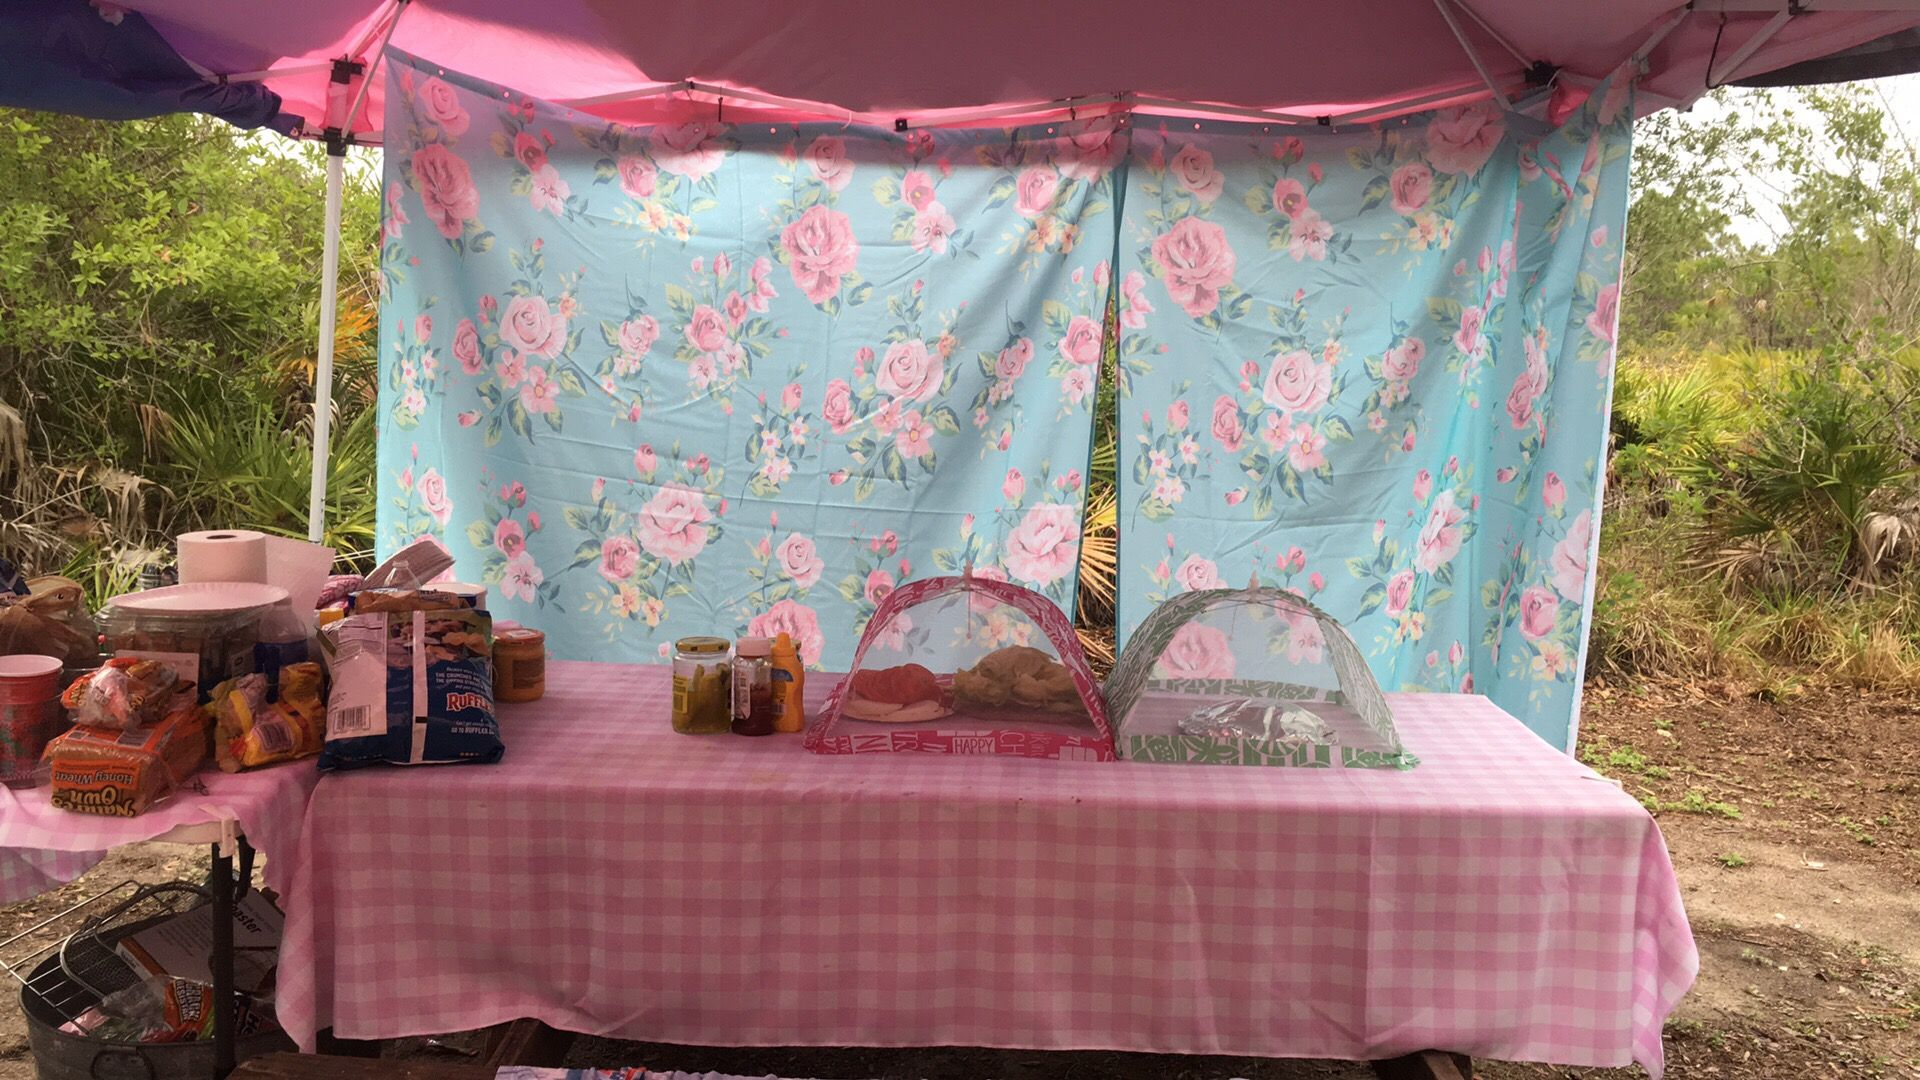 I used shower curtains to keep rain out from under canopy over ...